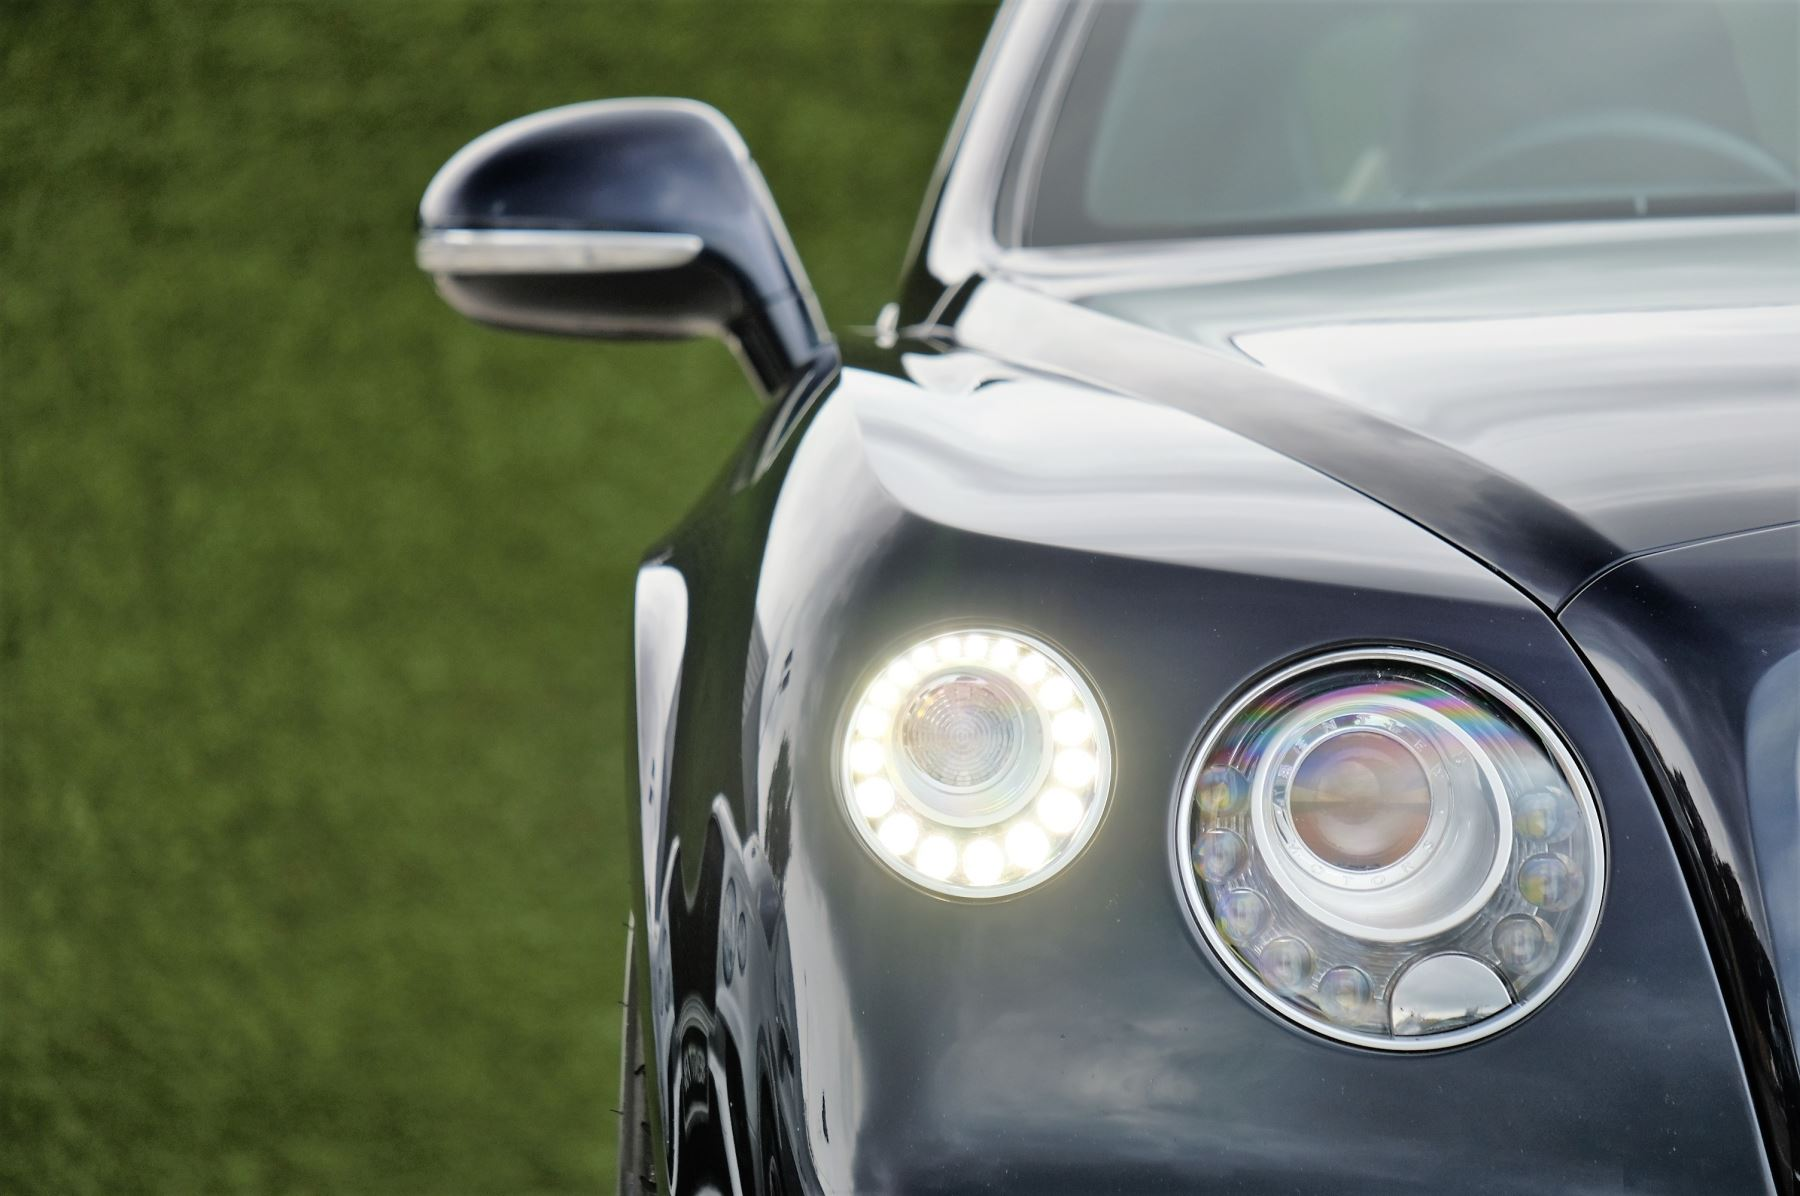 Bentley Continental GT 6.0 W12 [635] Speed - 21 inch Directional Sports Alloys - Ventilated Front Seats with Massage image 6